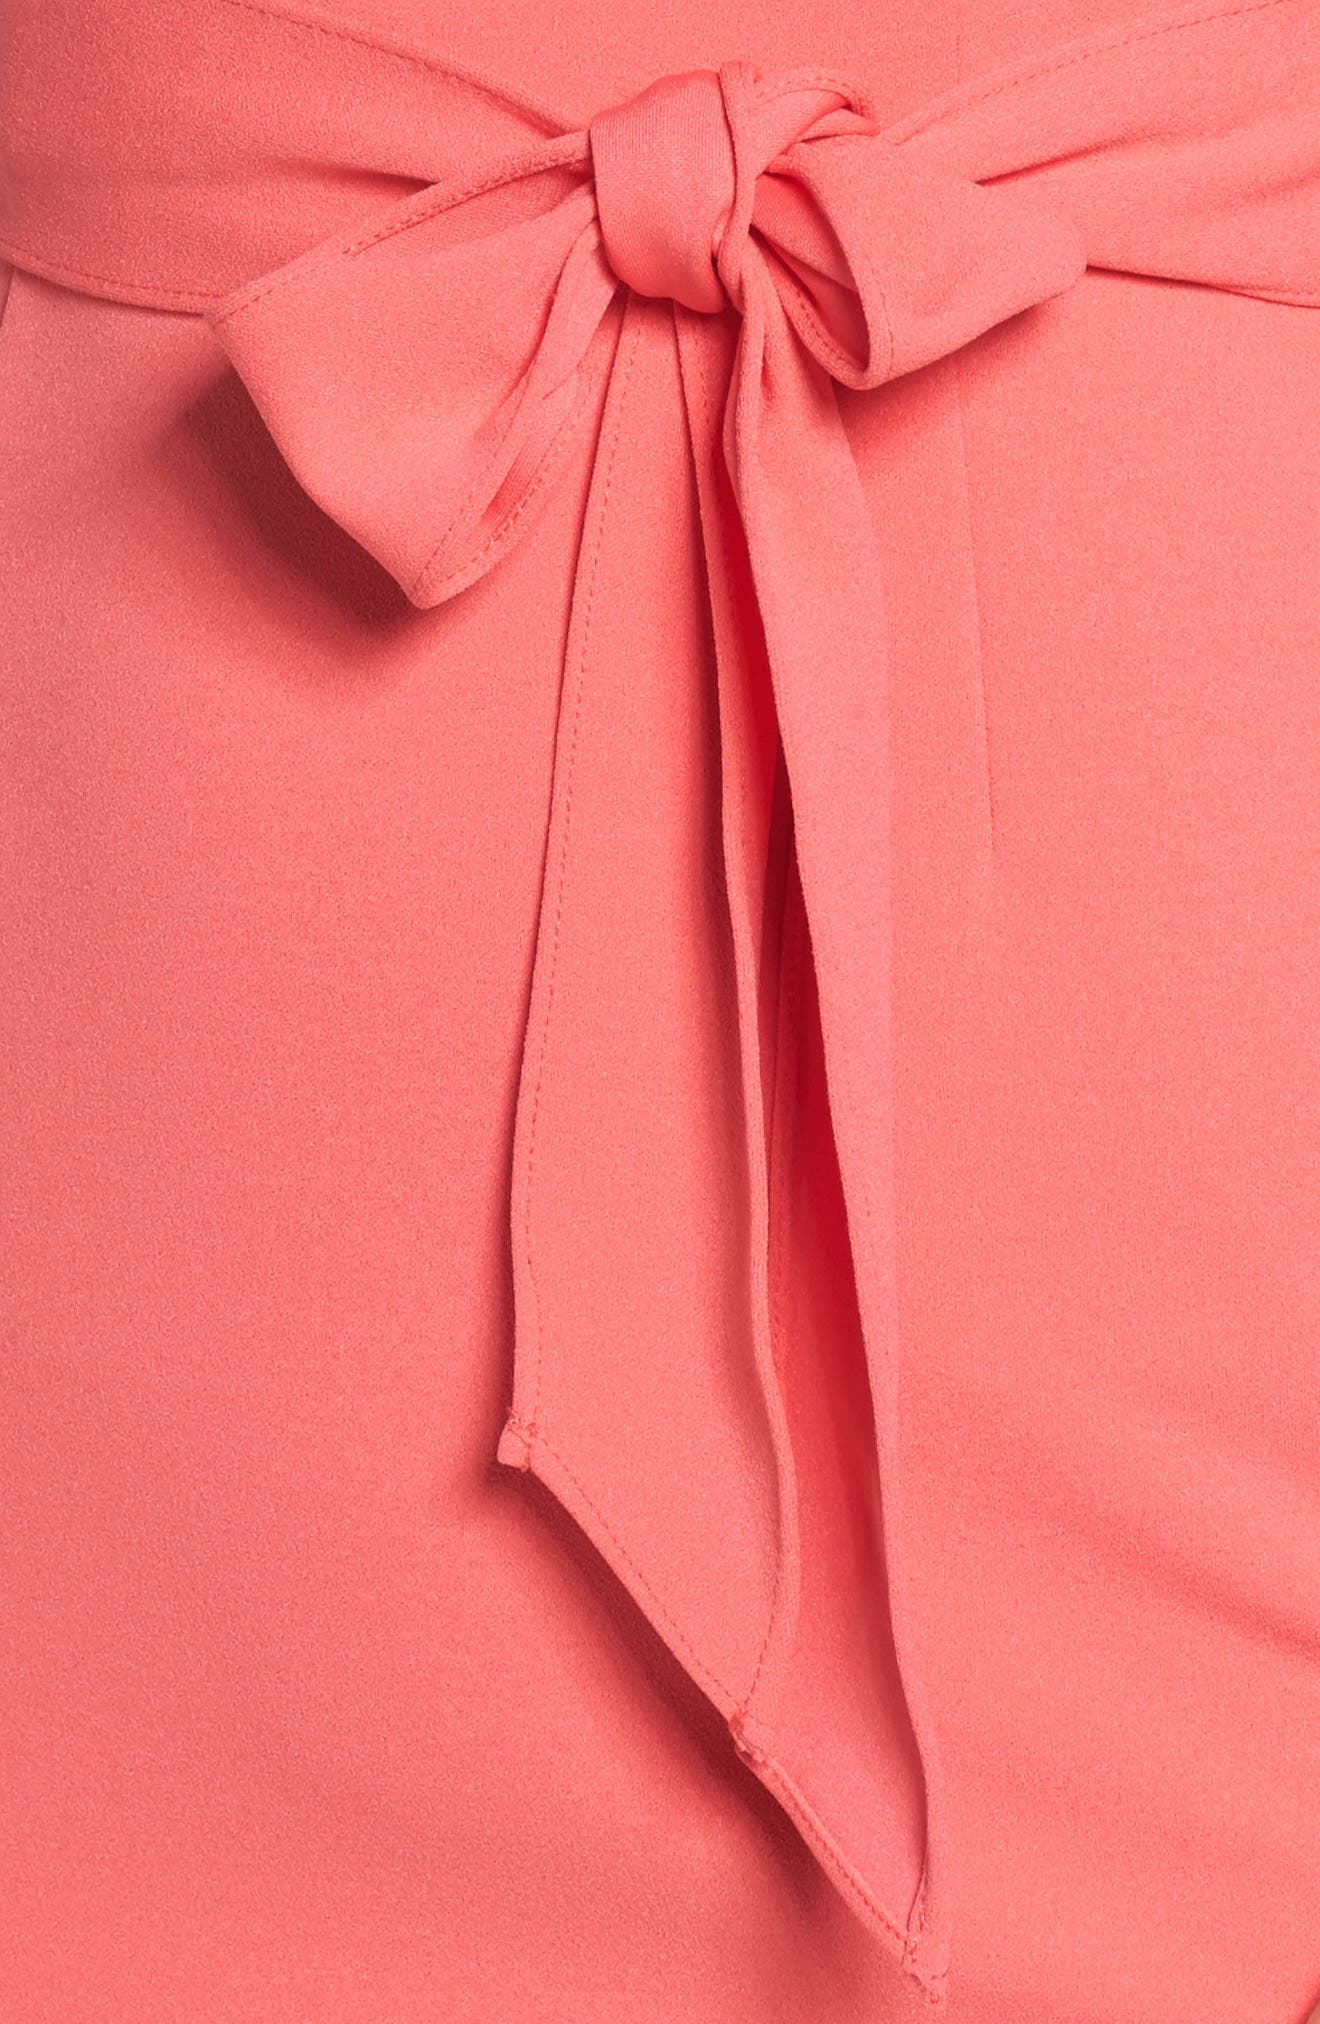 Roll Neck Crepe Dress,                             Alternate thumbnail 4, color,                             Strawberry Pink